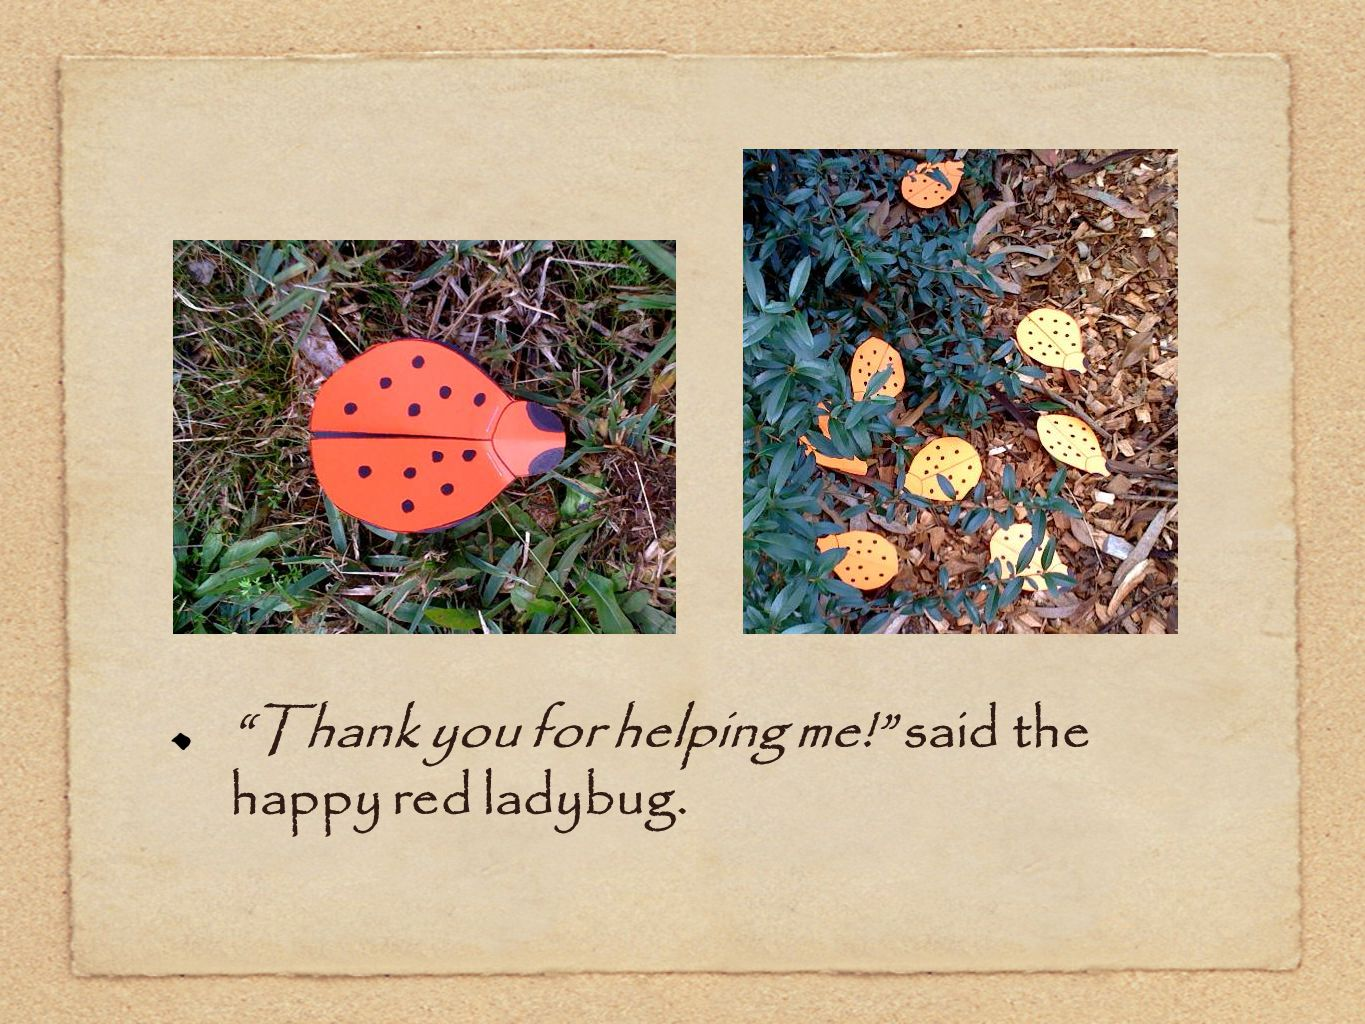 x Thank you for helping me! said the happy red ladybug.